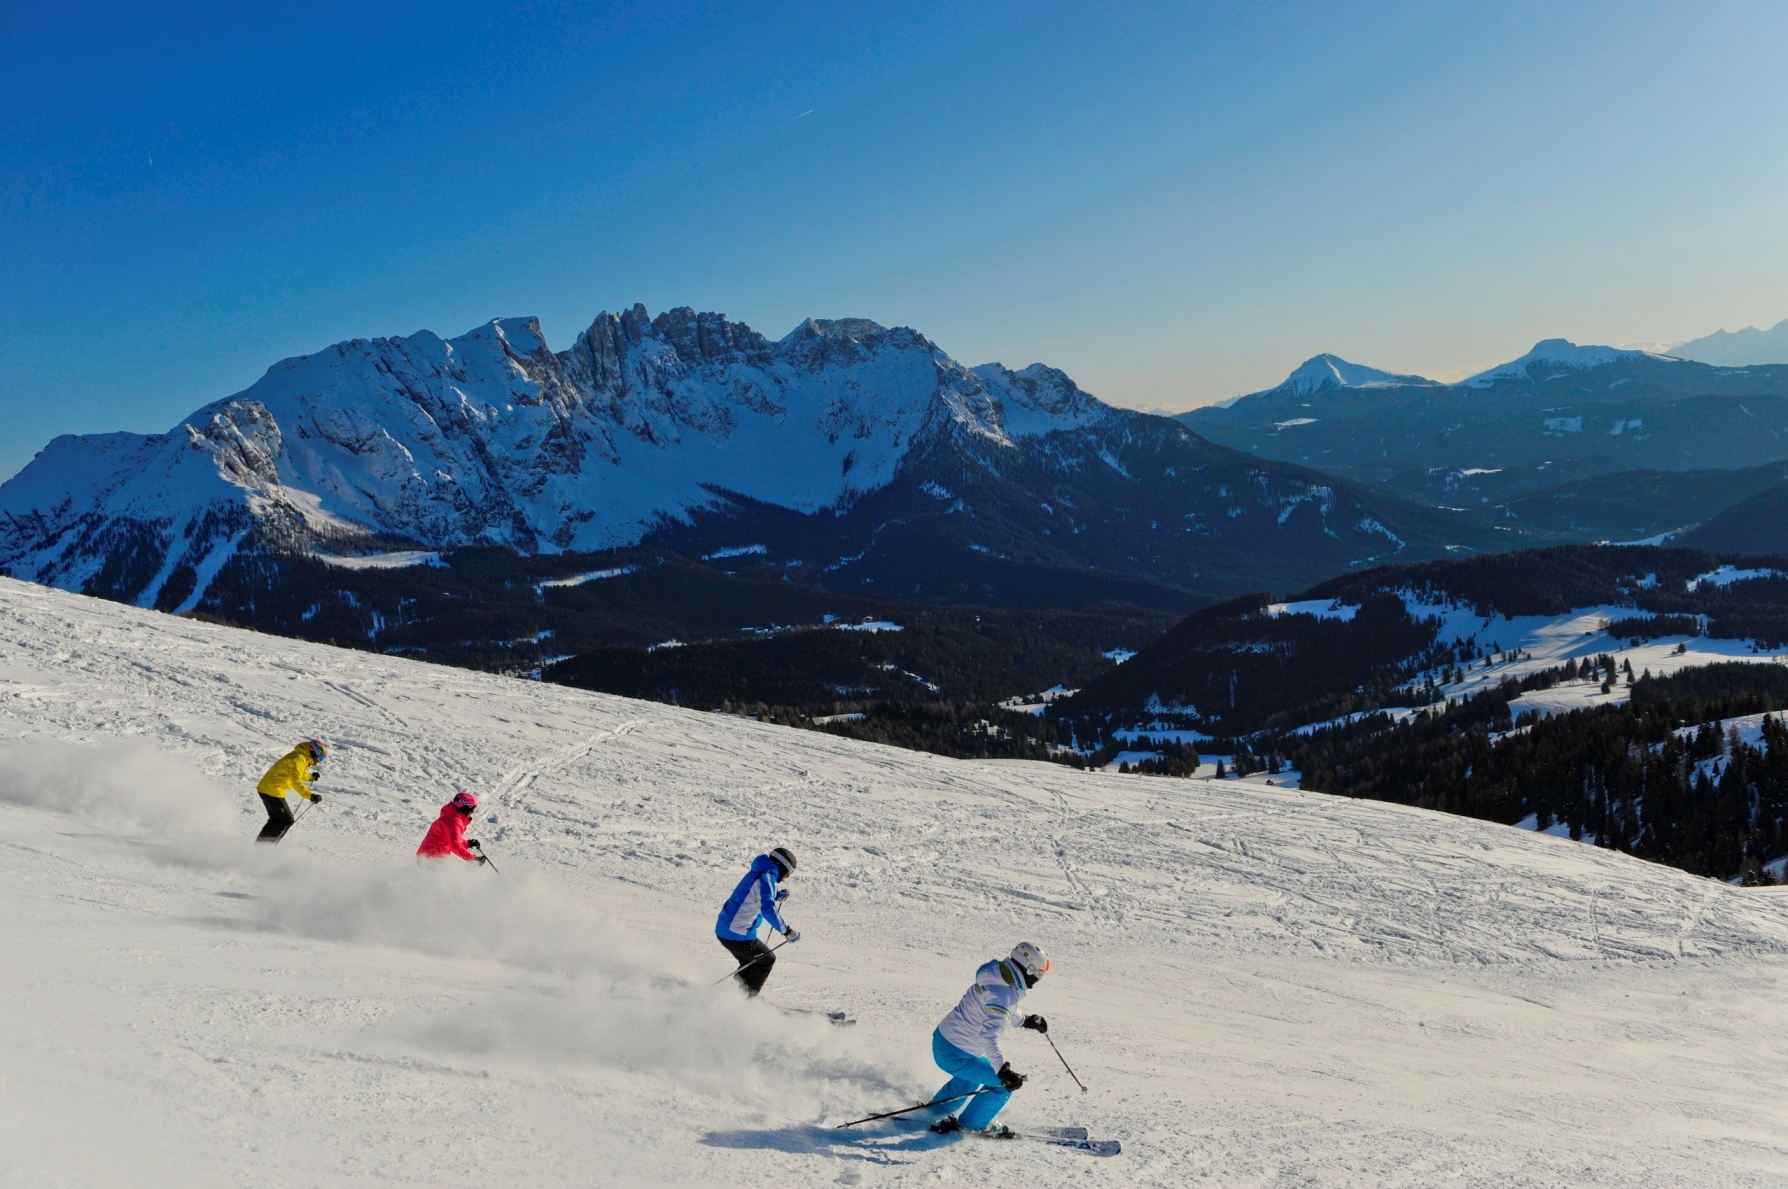 02_carezza_ski_area_welschnofen_suedtirol_tourismus_management_lana